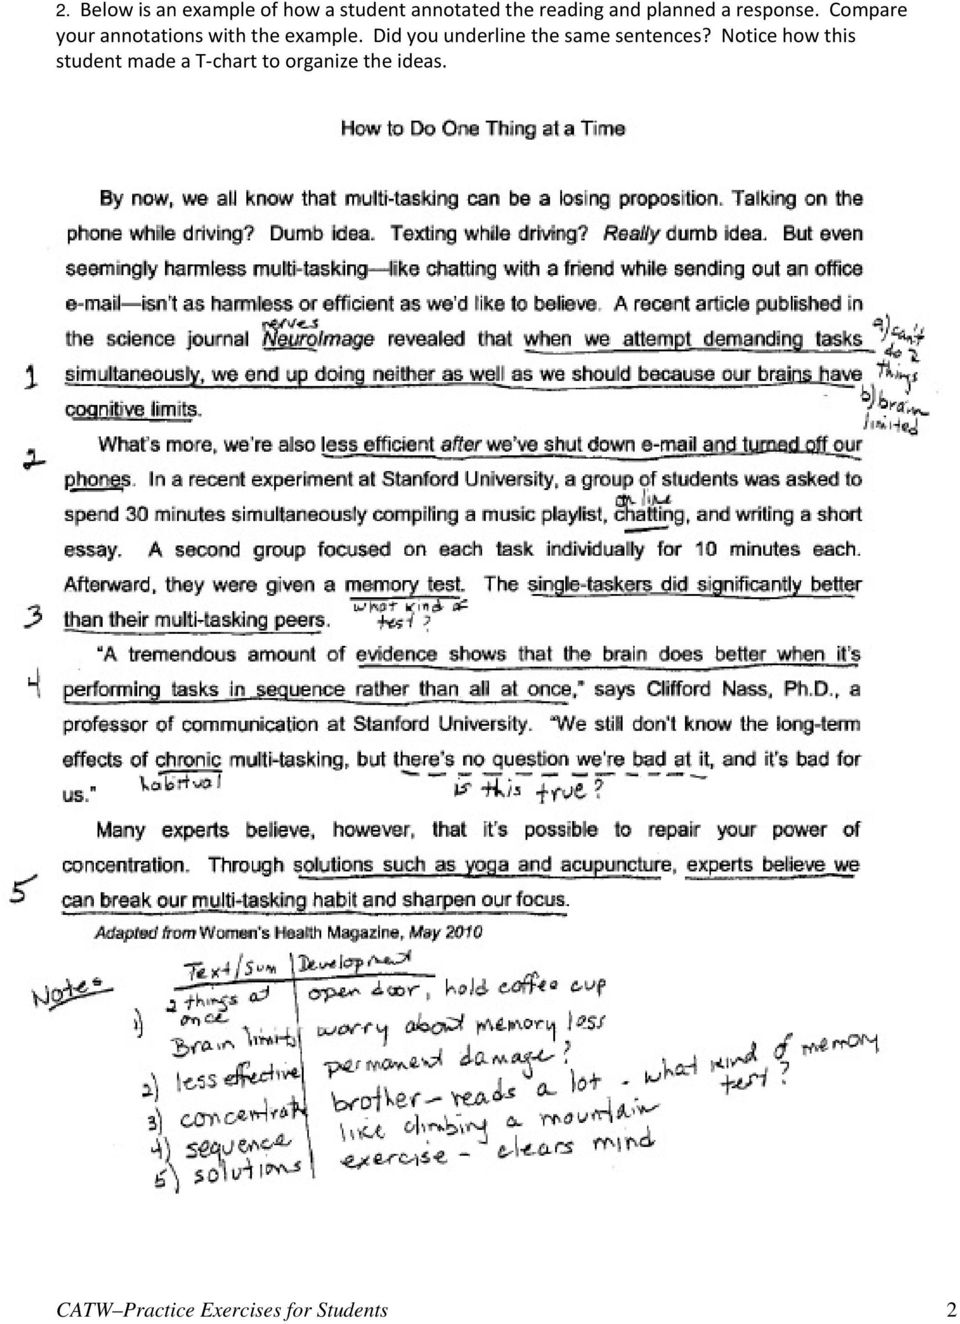 012 Research Paper Topics Medical Page 3 Impressive For Technology Students Malpractice Full